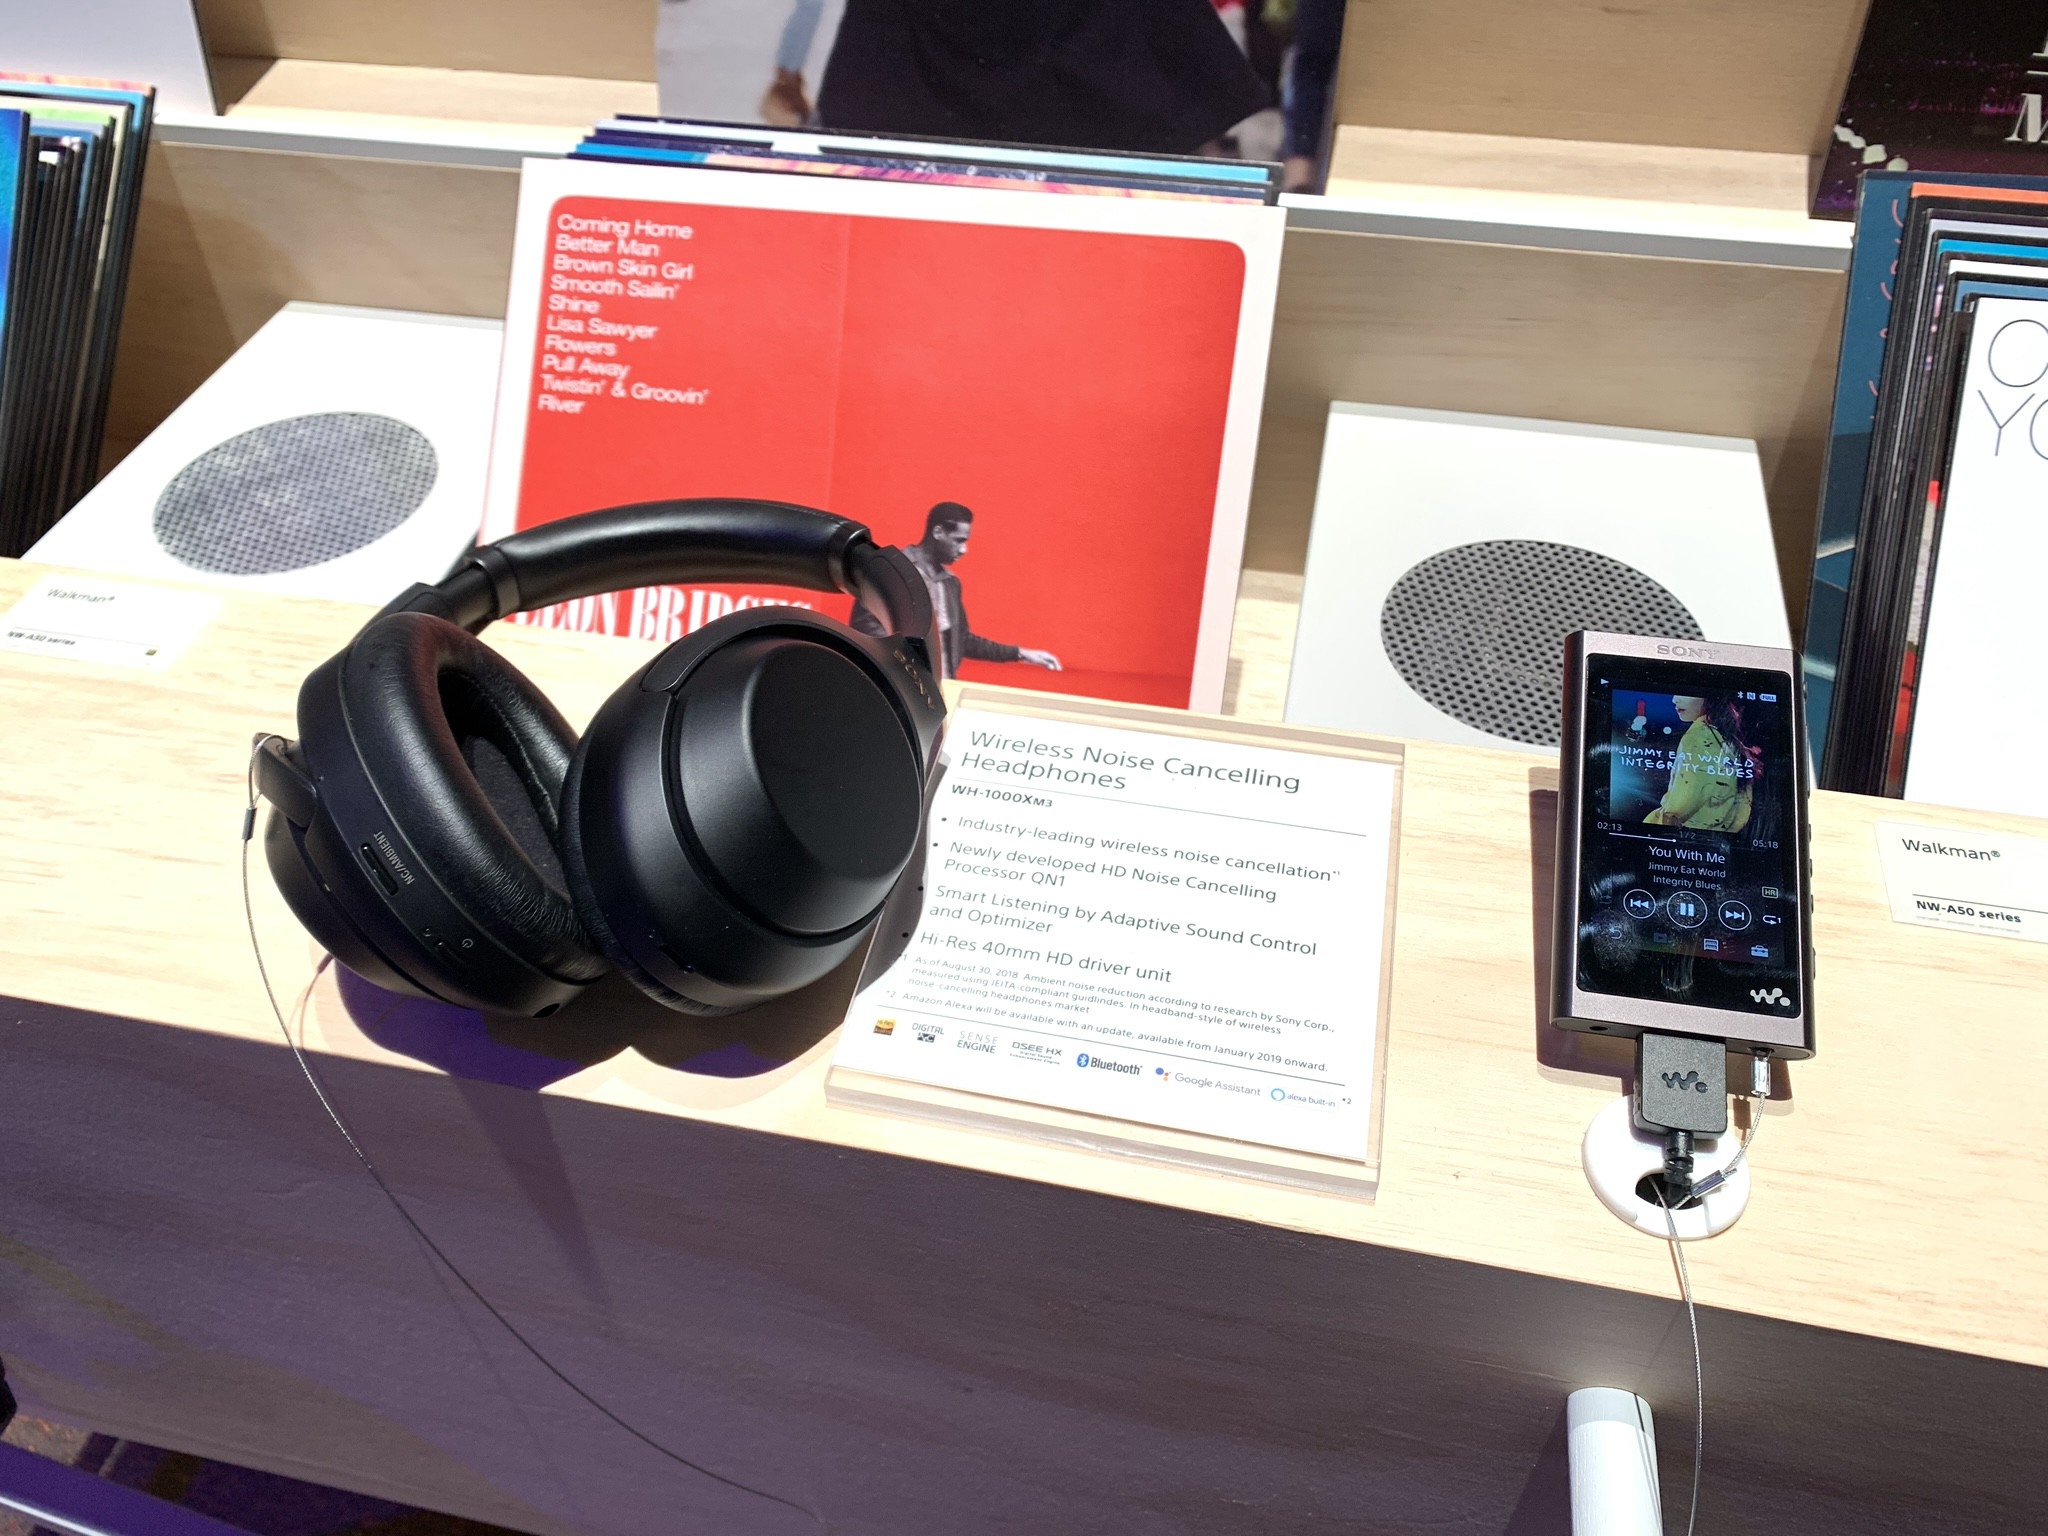 CES 2019: A Show Report - Learning By Shipping